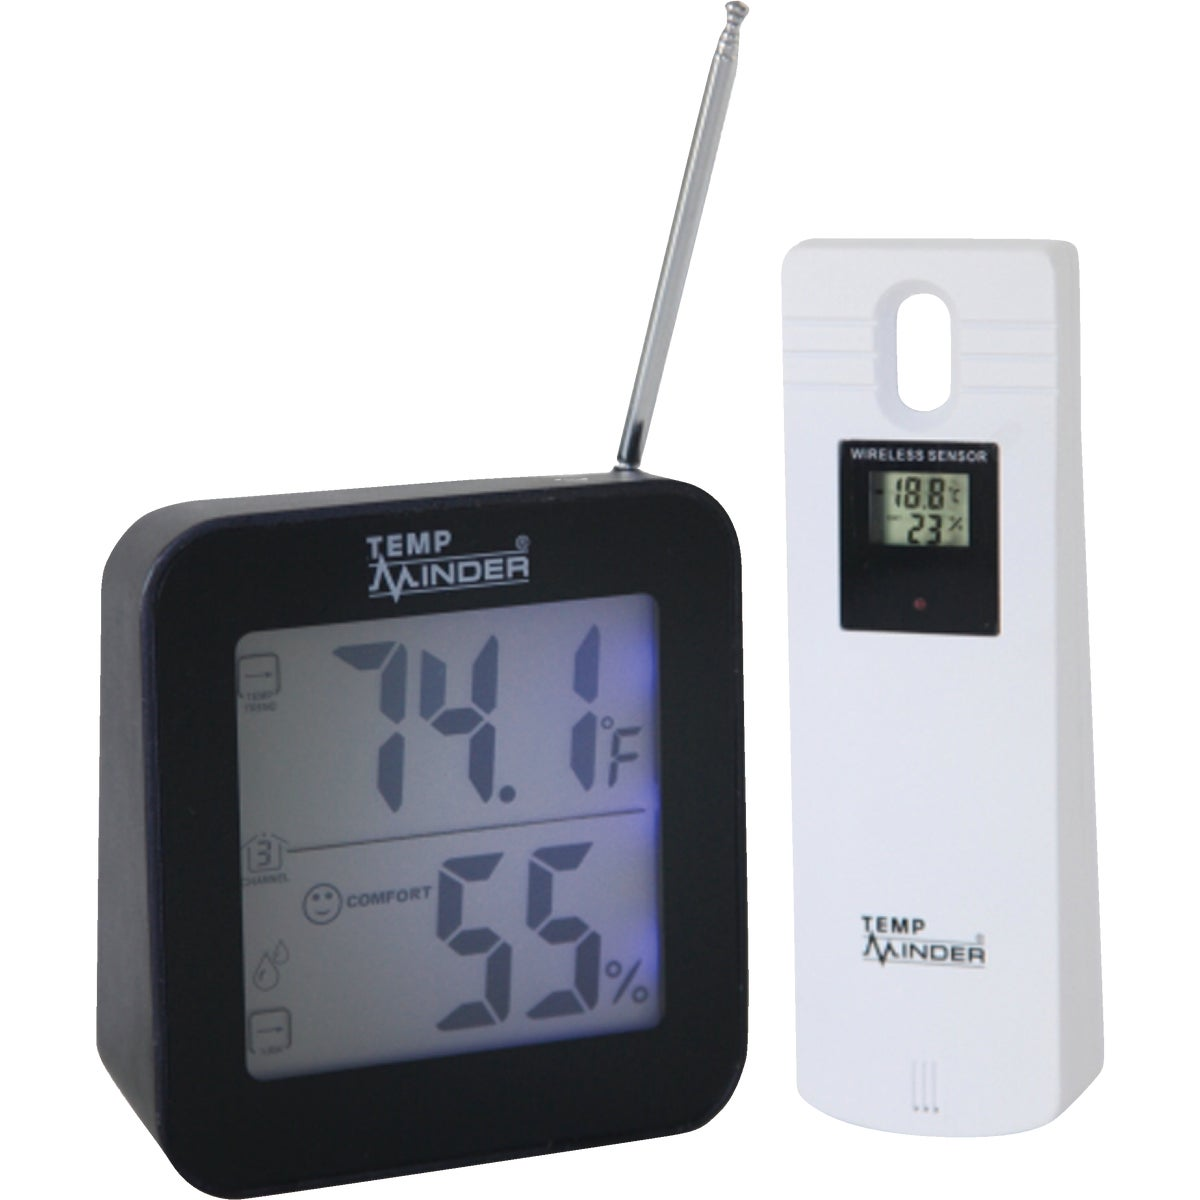 Item 650230, Indoor and Outdoor temperature and humidity. Minimum and Maximum temperature and humidity memory. Programmable temperature alert on all three channels.